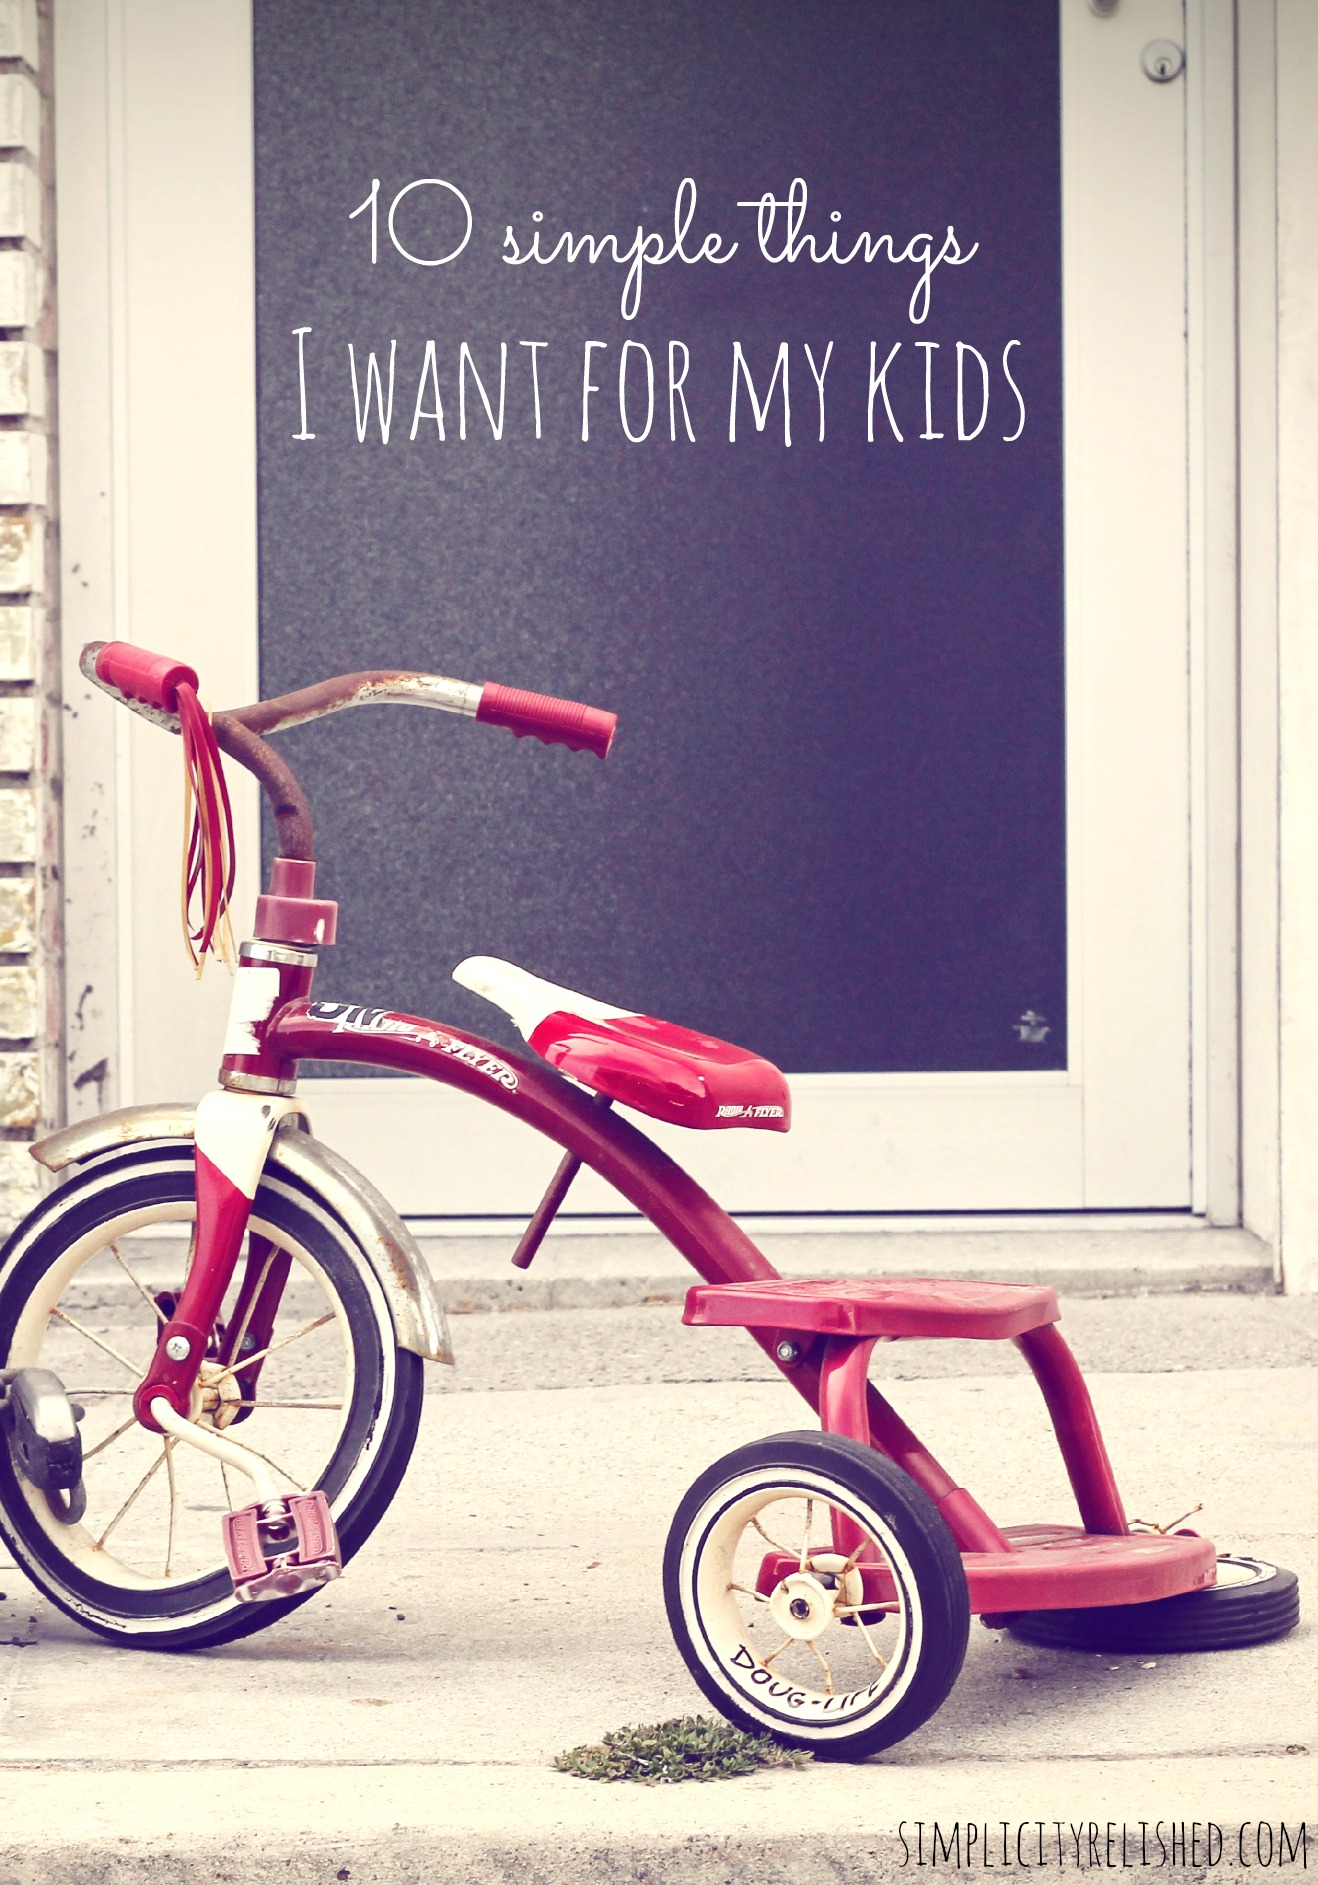 10 simple things I want for my kids- elements of childhood that should not be forgotten